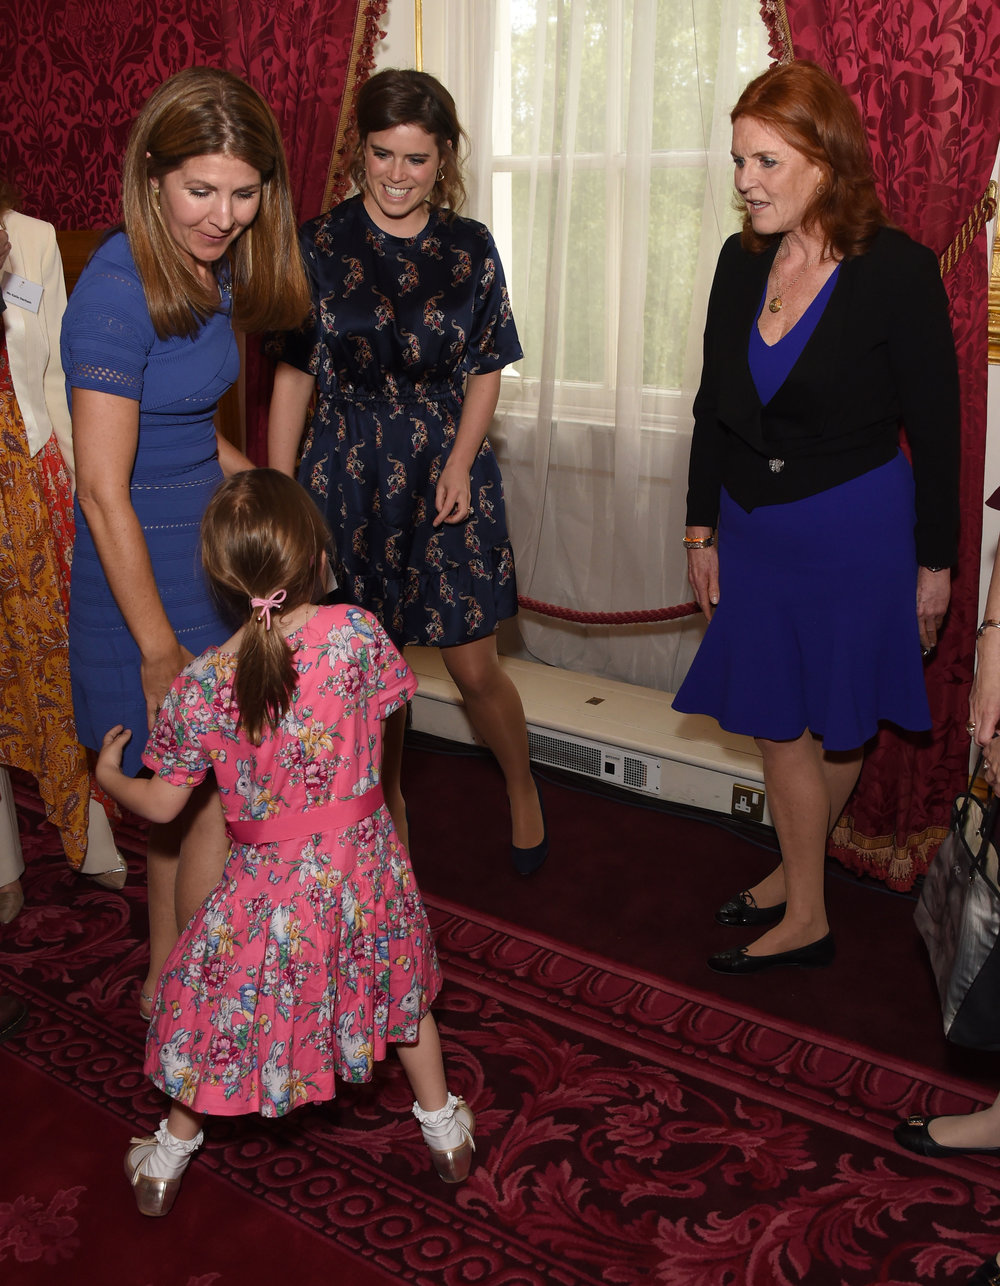 Alice Ashton, Oscar's little sister, Viveka Alvestrand, co-founder of Oscar's Book Prize, with HRH Princess Eugenie and Sarah, Duchess of York. Image: Dave Benett